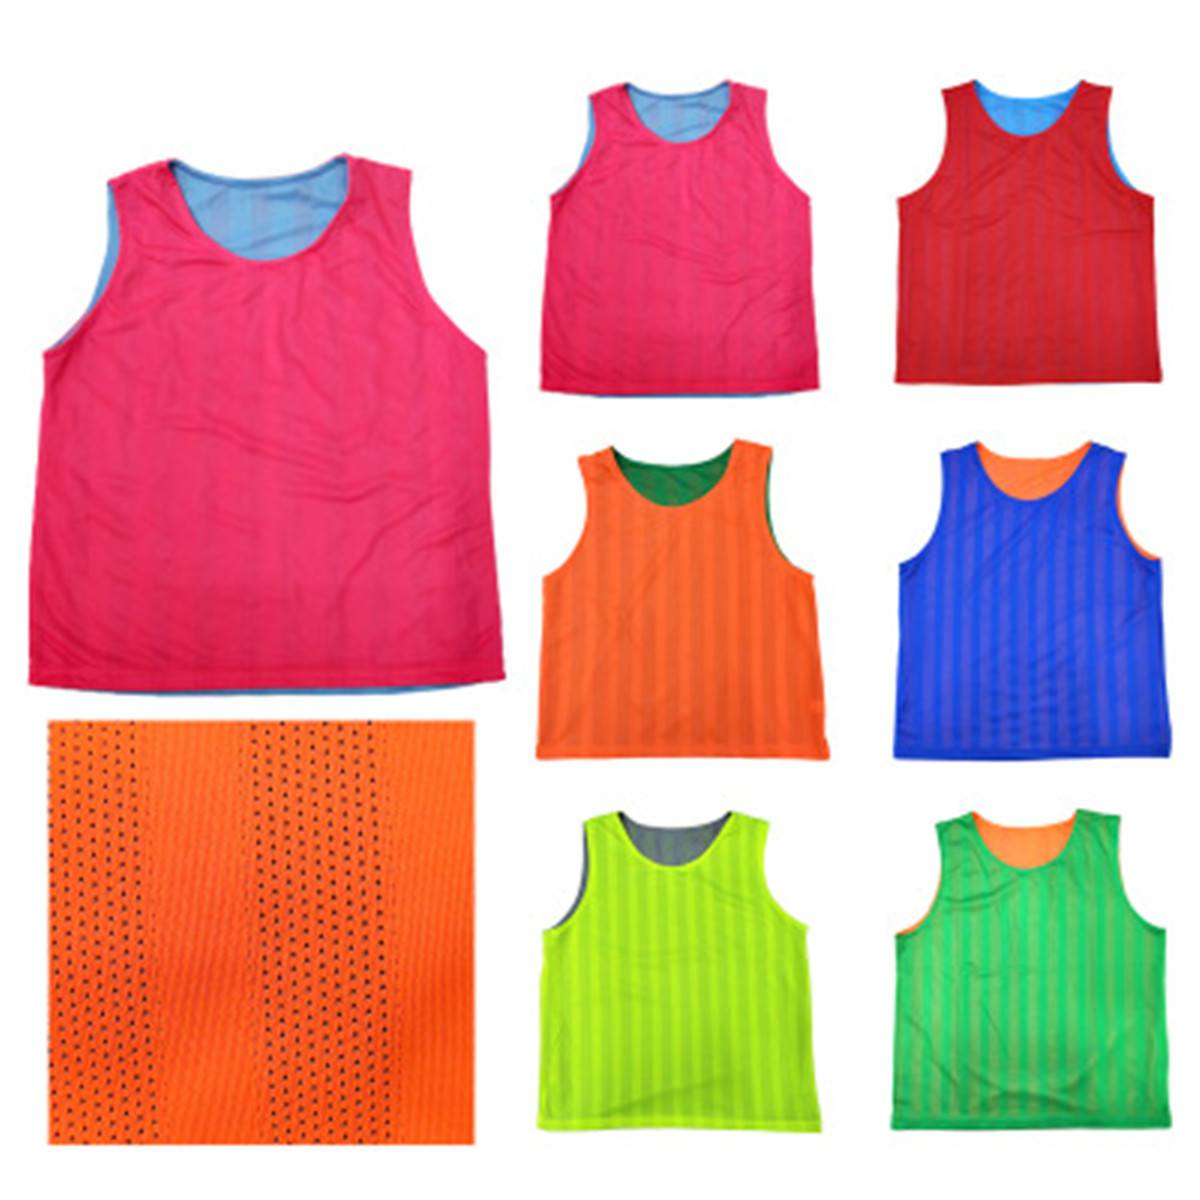 Double Layers Youth Soccer Practice Vest